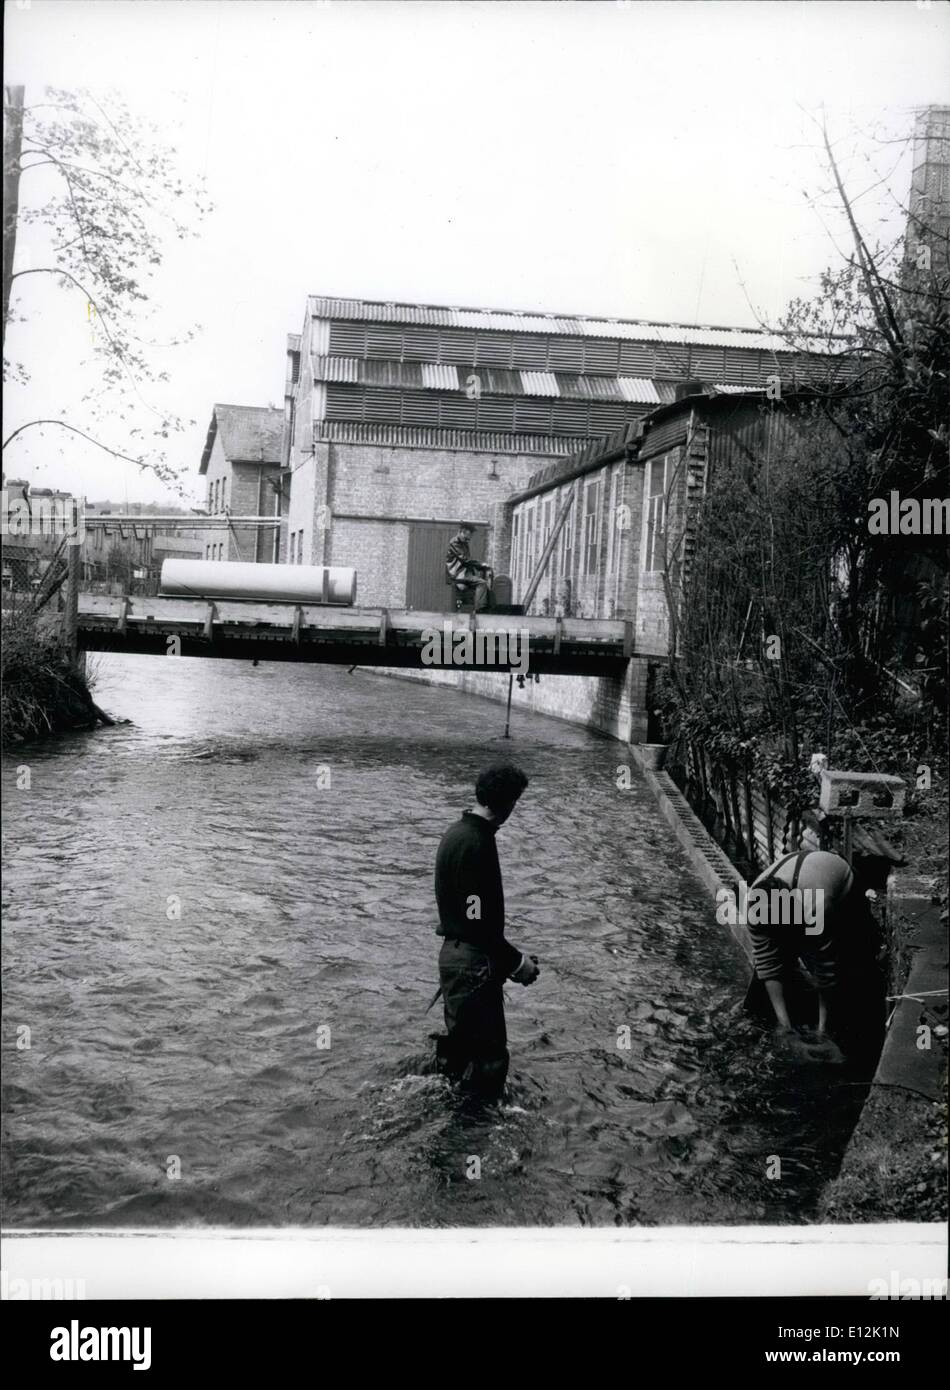 Feb. 24, 2012 - The Swift waters of the River Wyle cause the embankment to erode, and workmen are pictured constructing a brick - Stock Image